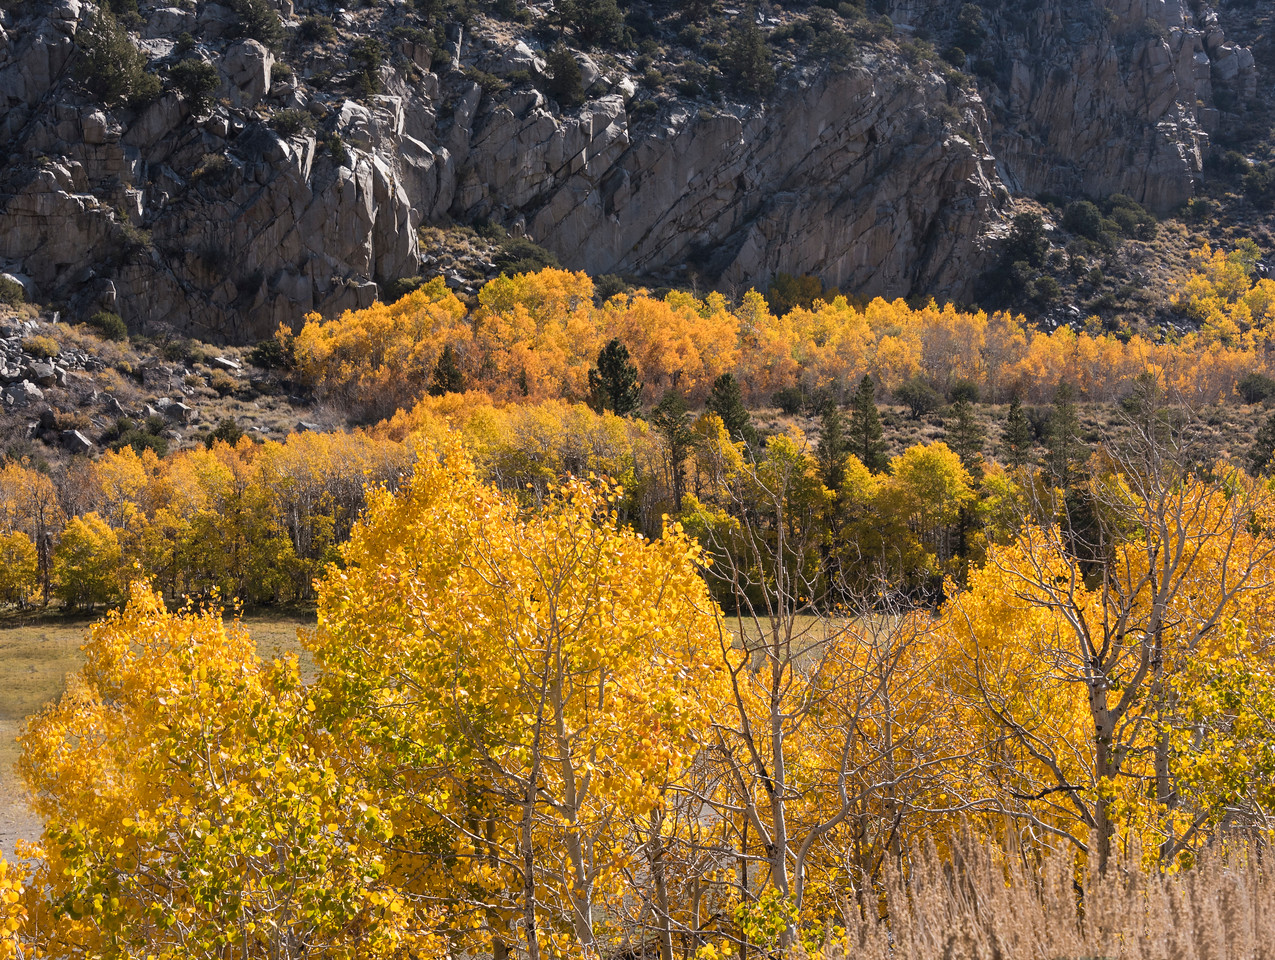 032-YellowAspens-SRA_1976